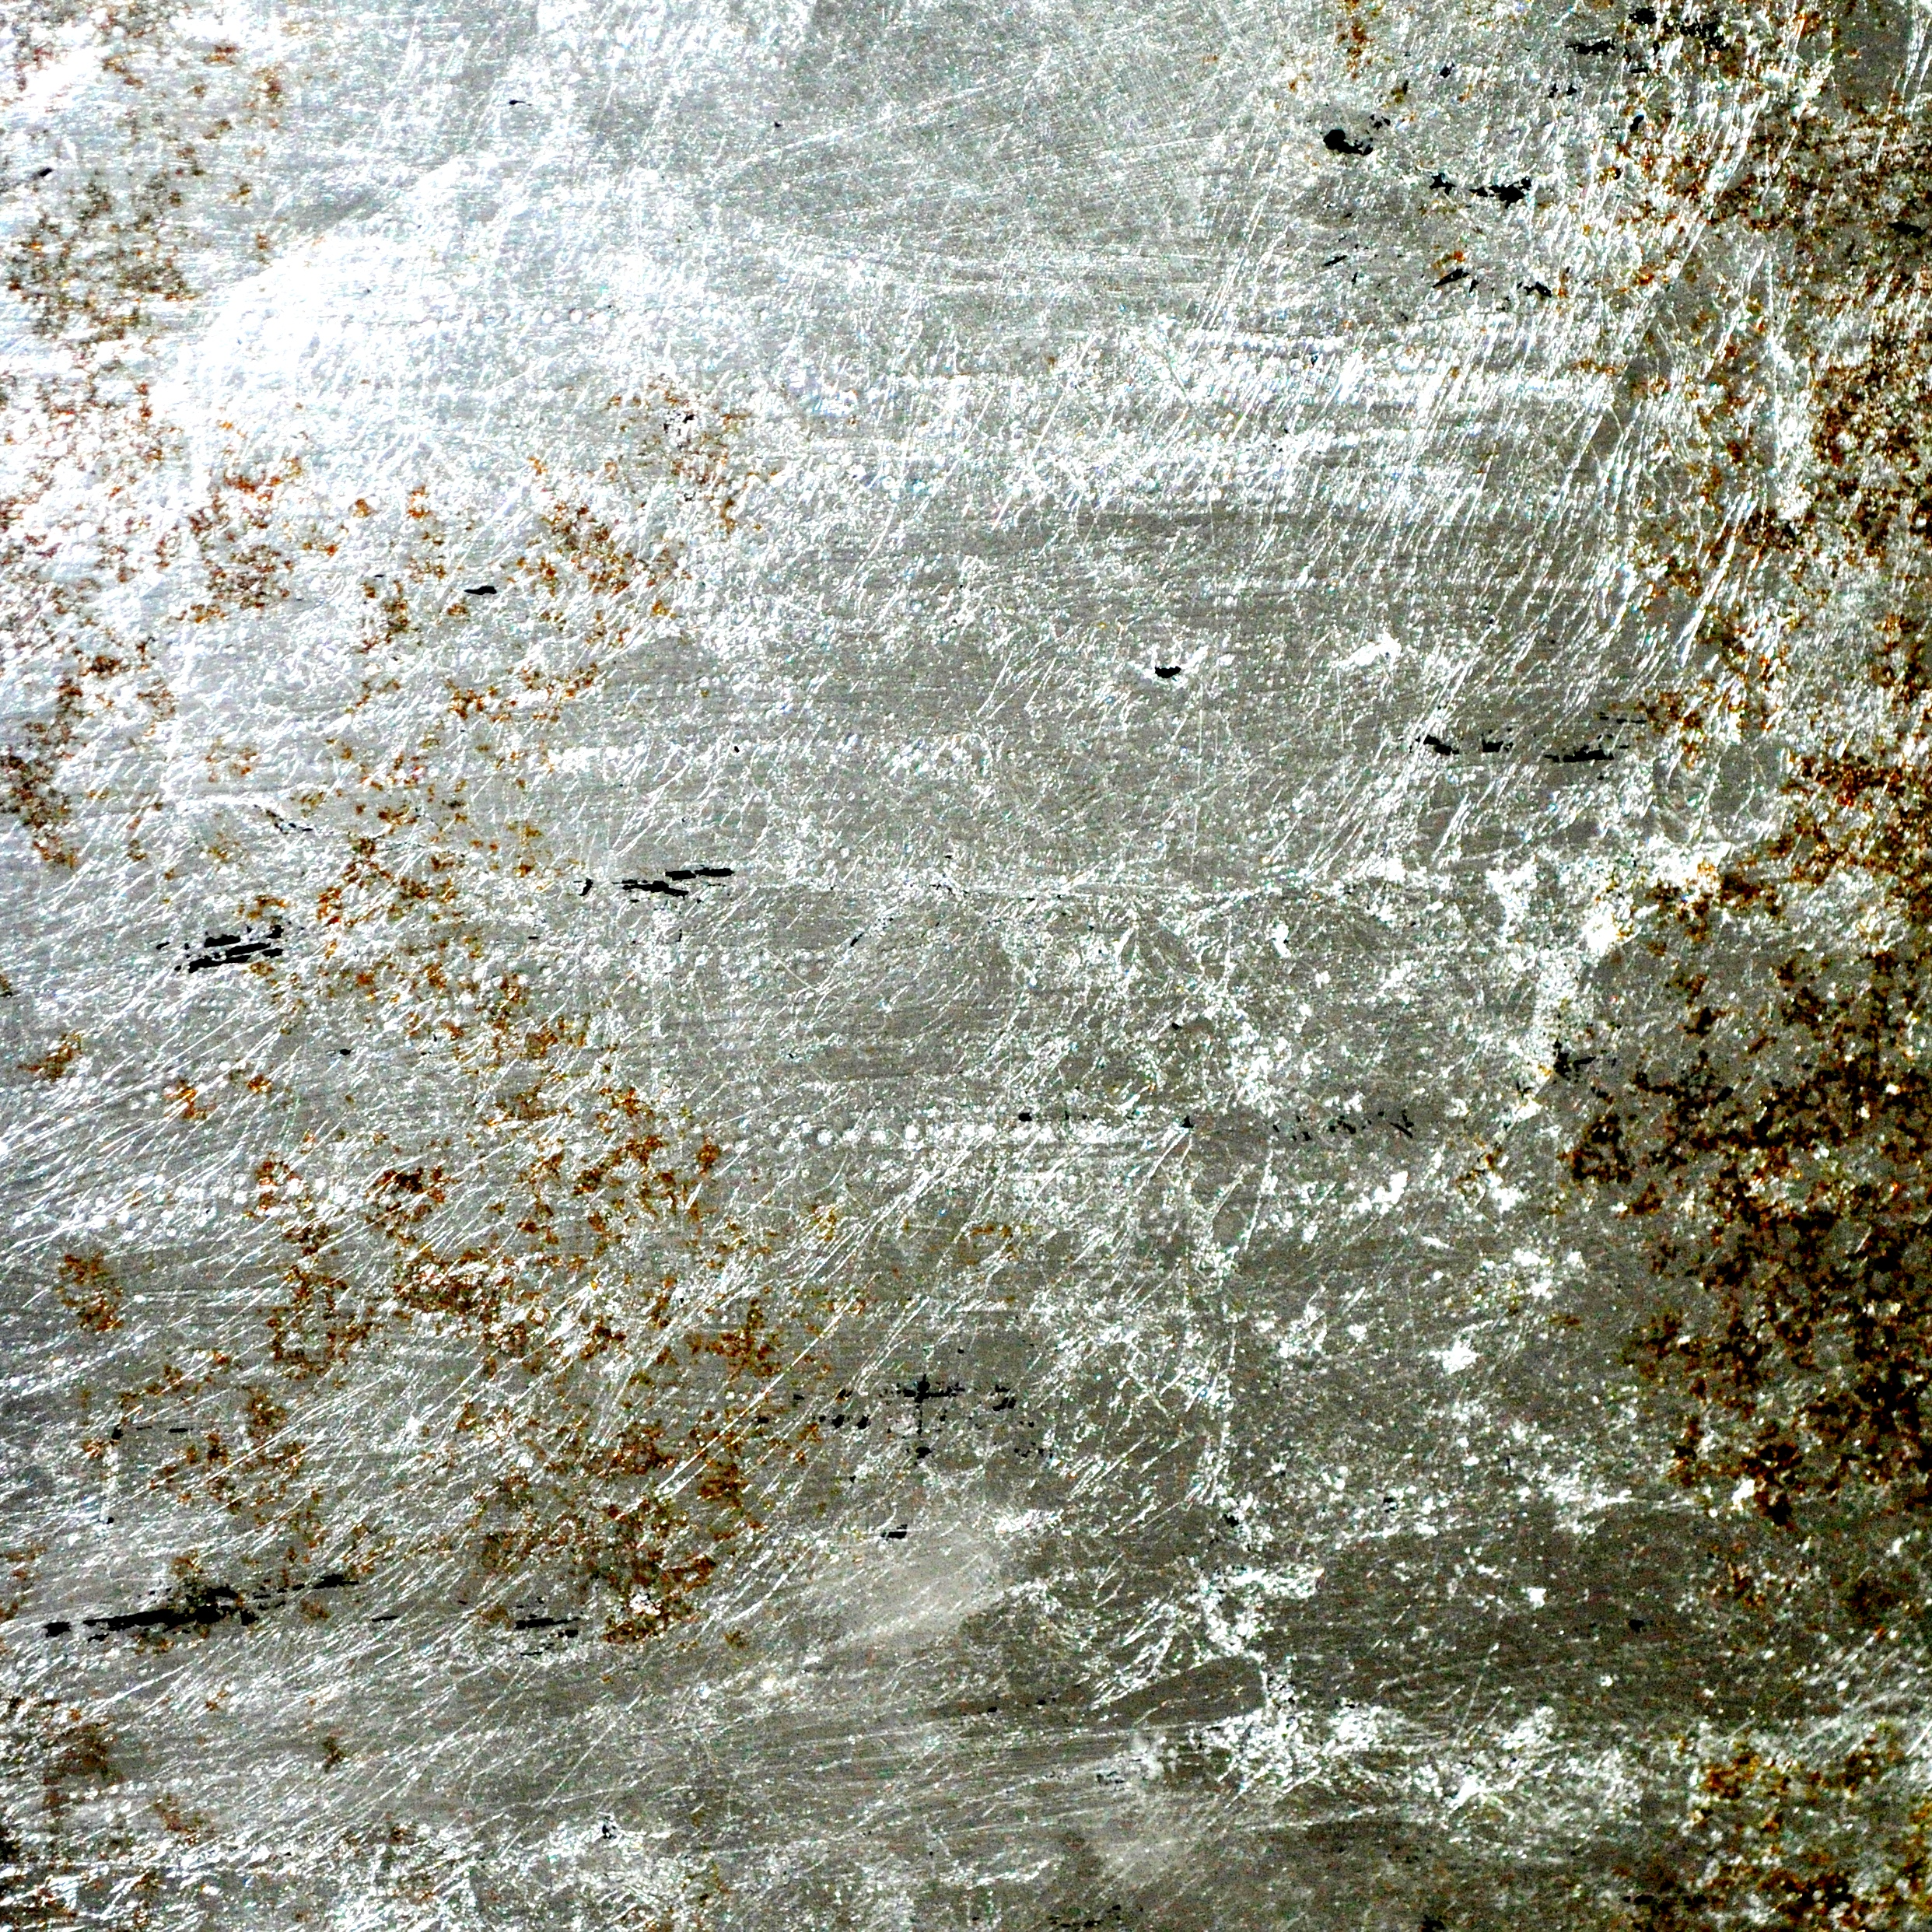 PERSIA SILVER PATINATED MIRRORS 2600 X 1605 MM